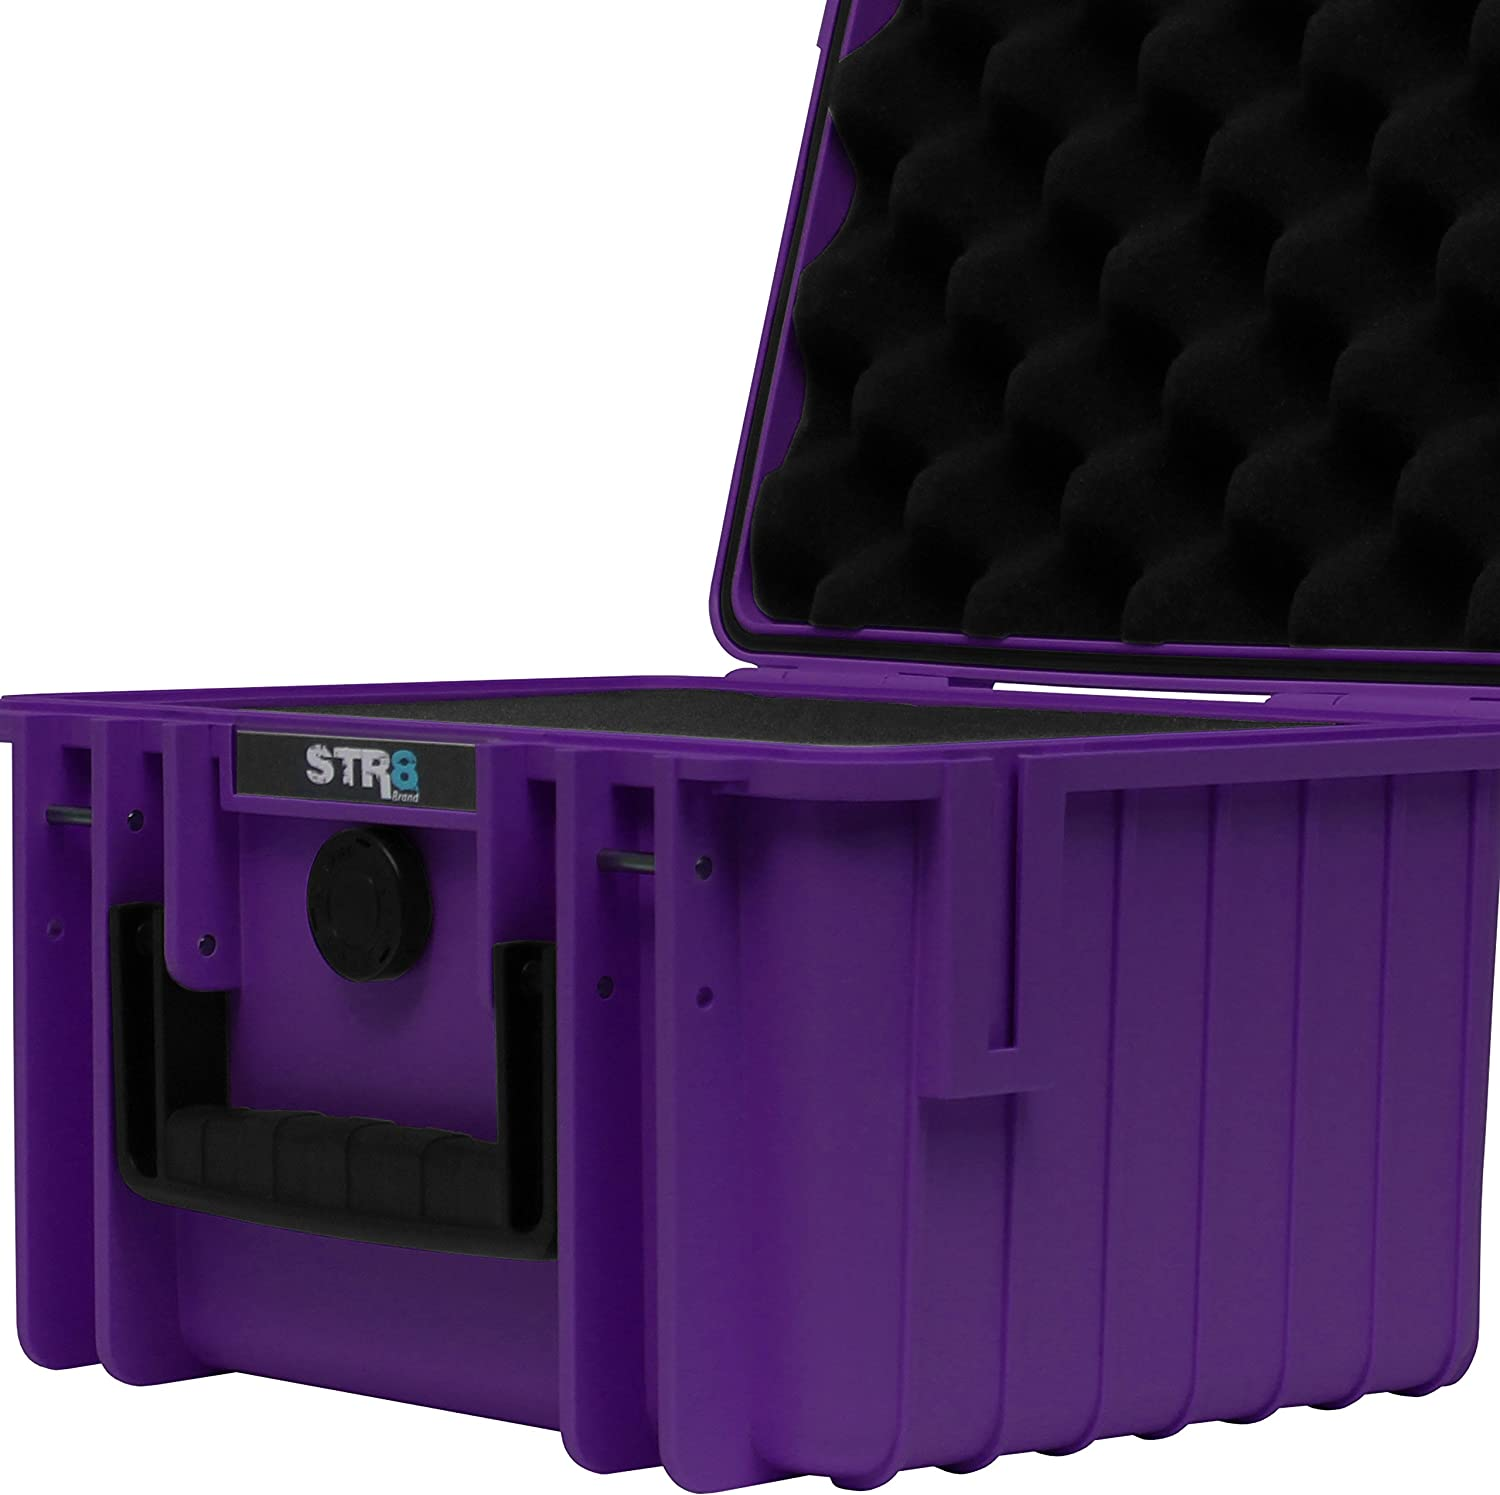 Smell Proof Waterproof Glass Protector Lockable STR8 Brand 10 with 3-Layer Pre Cut Grid Configuration Foam Outdoor Carrying Case for Multi-Purpose STR8BRAND